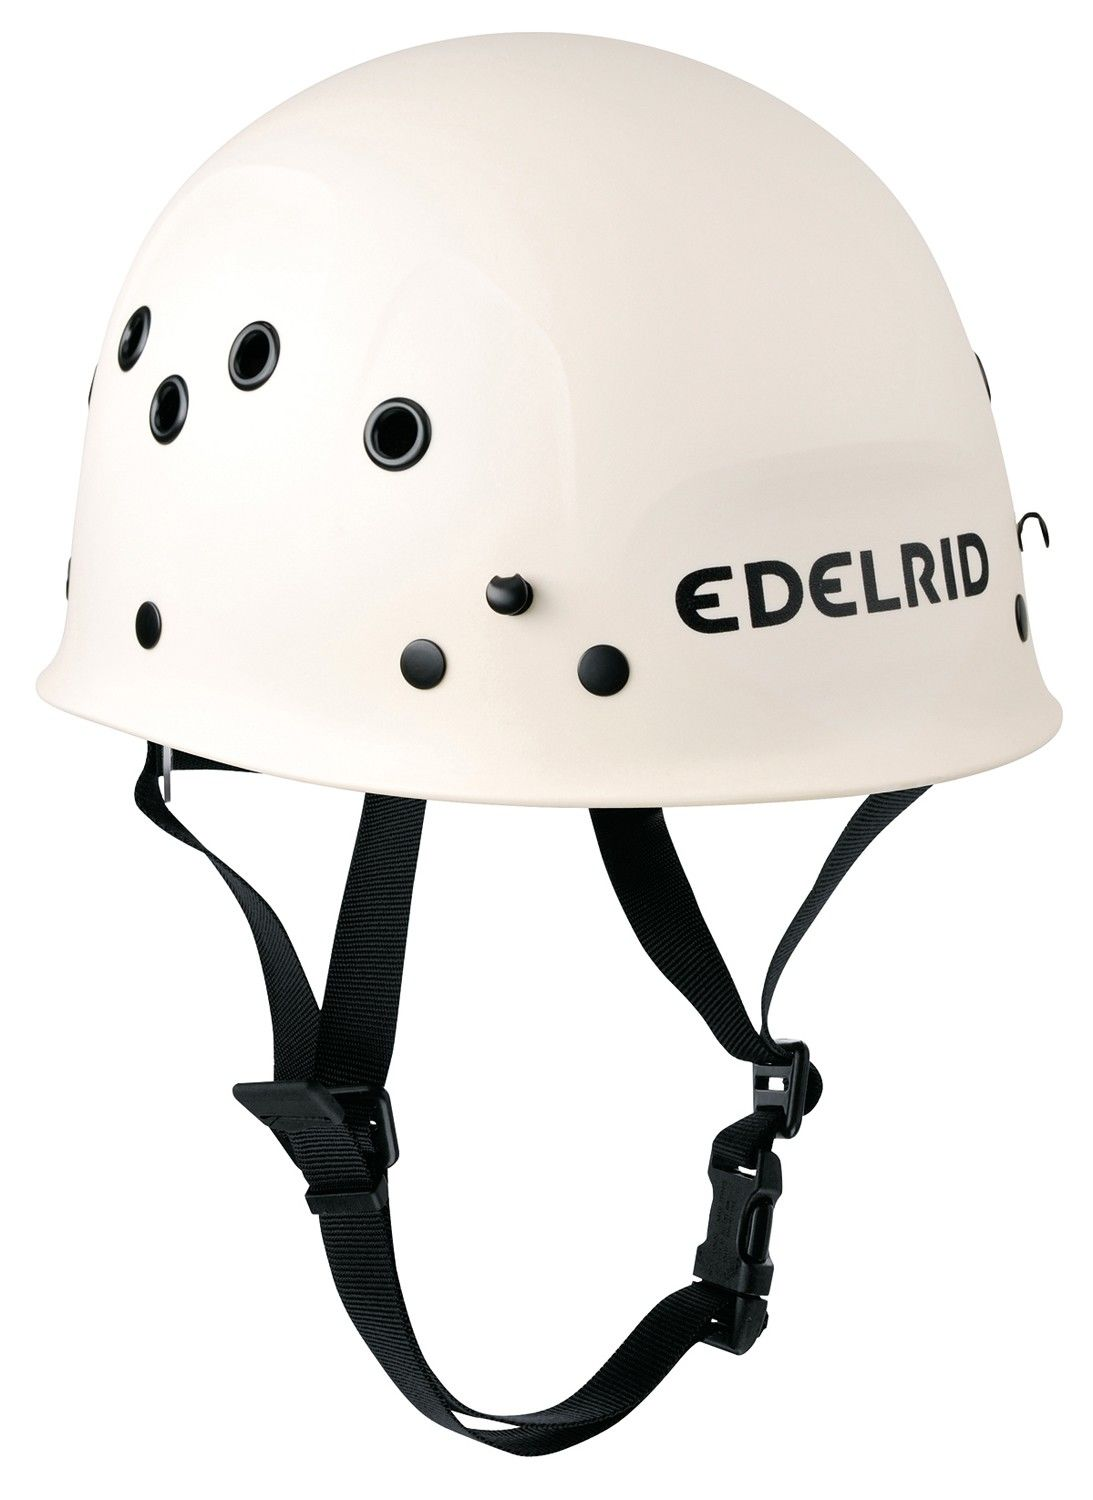 Edelrid Ultralight Junior Weiß, Kletterhelm, 48 -58 cm